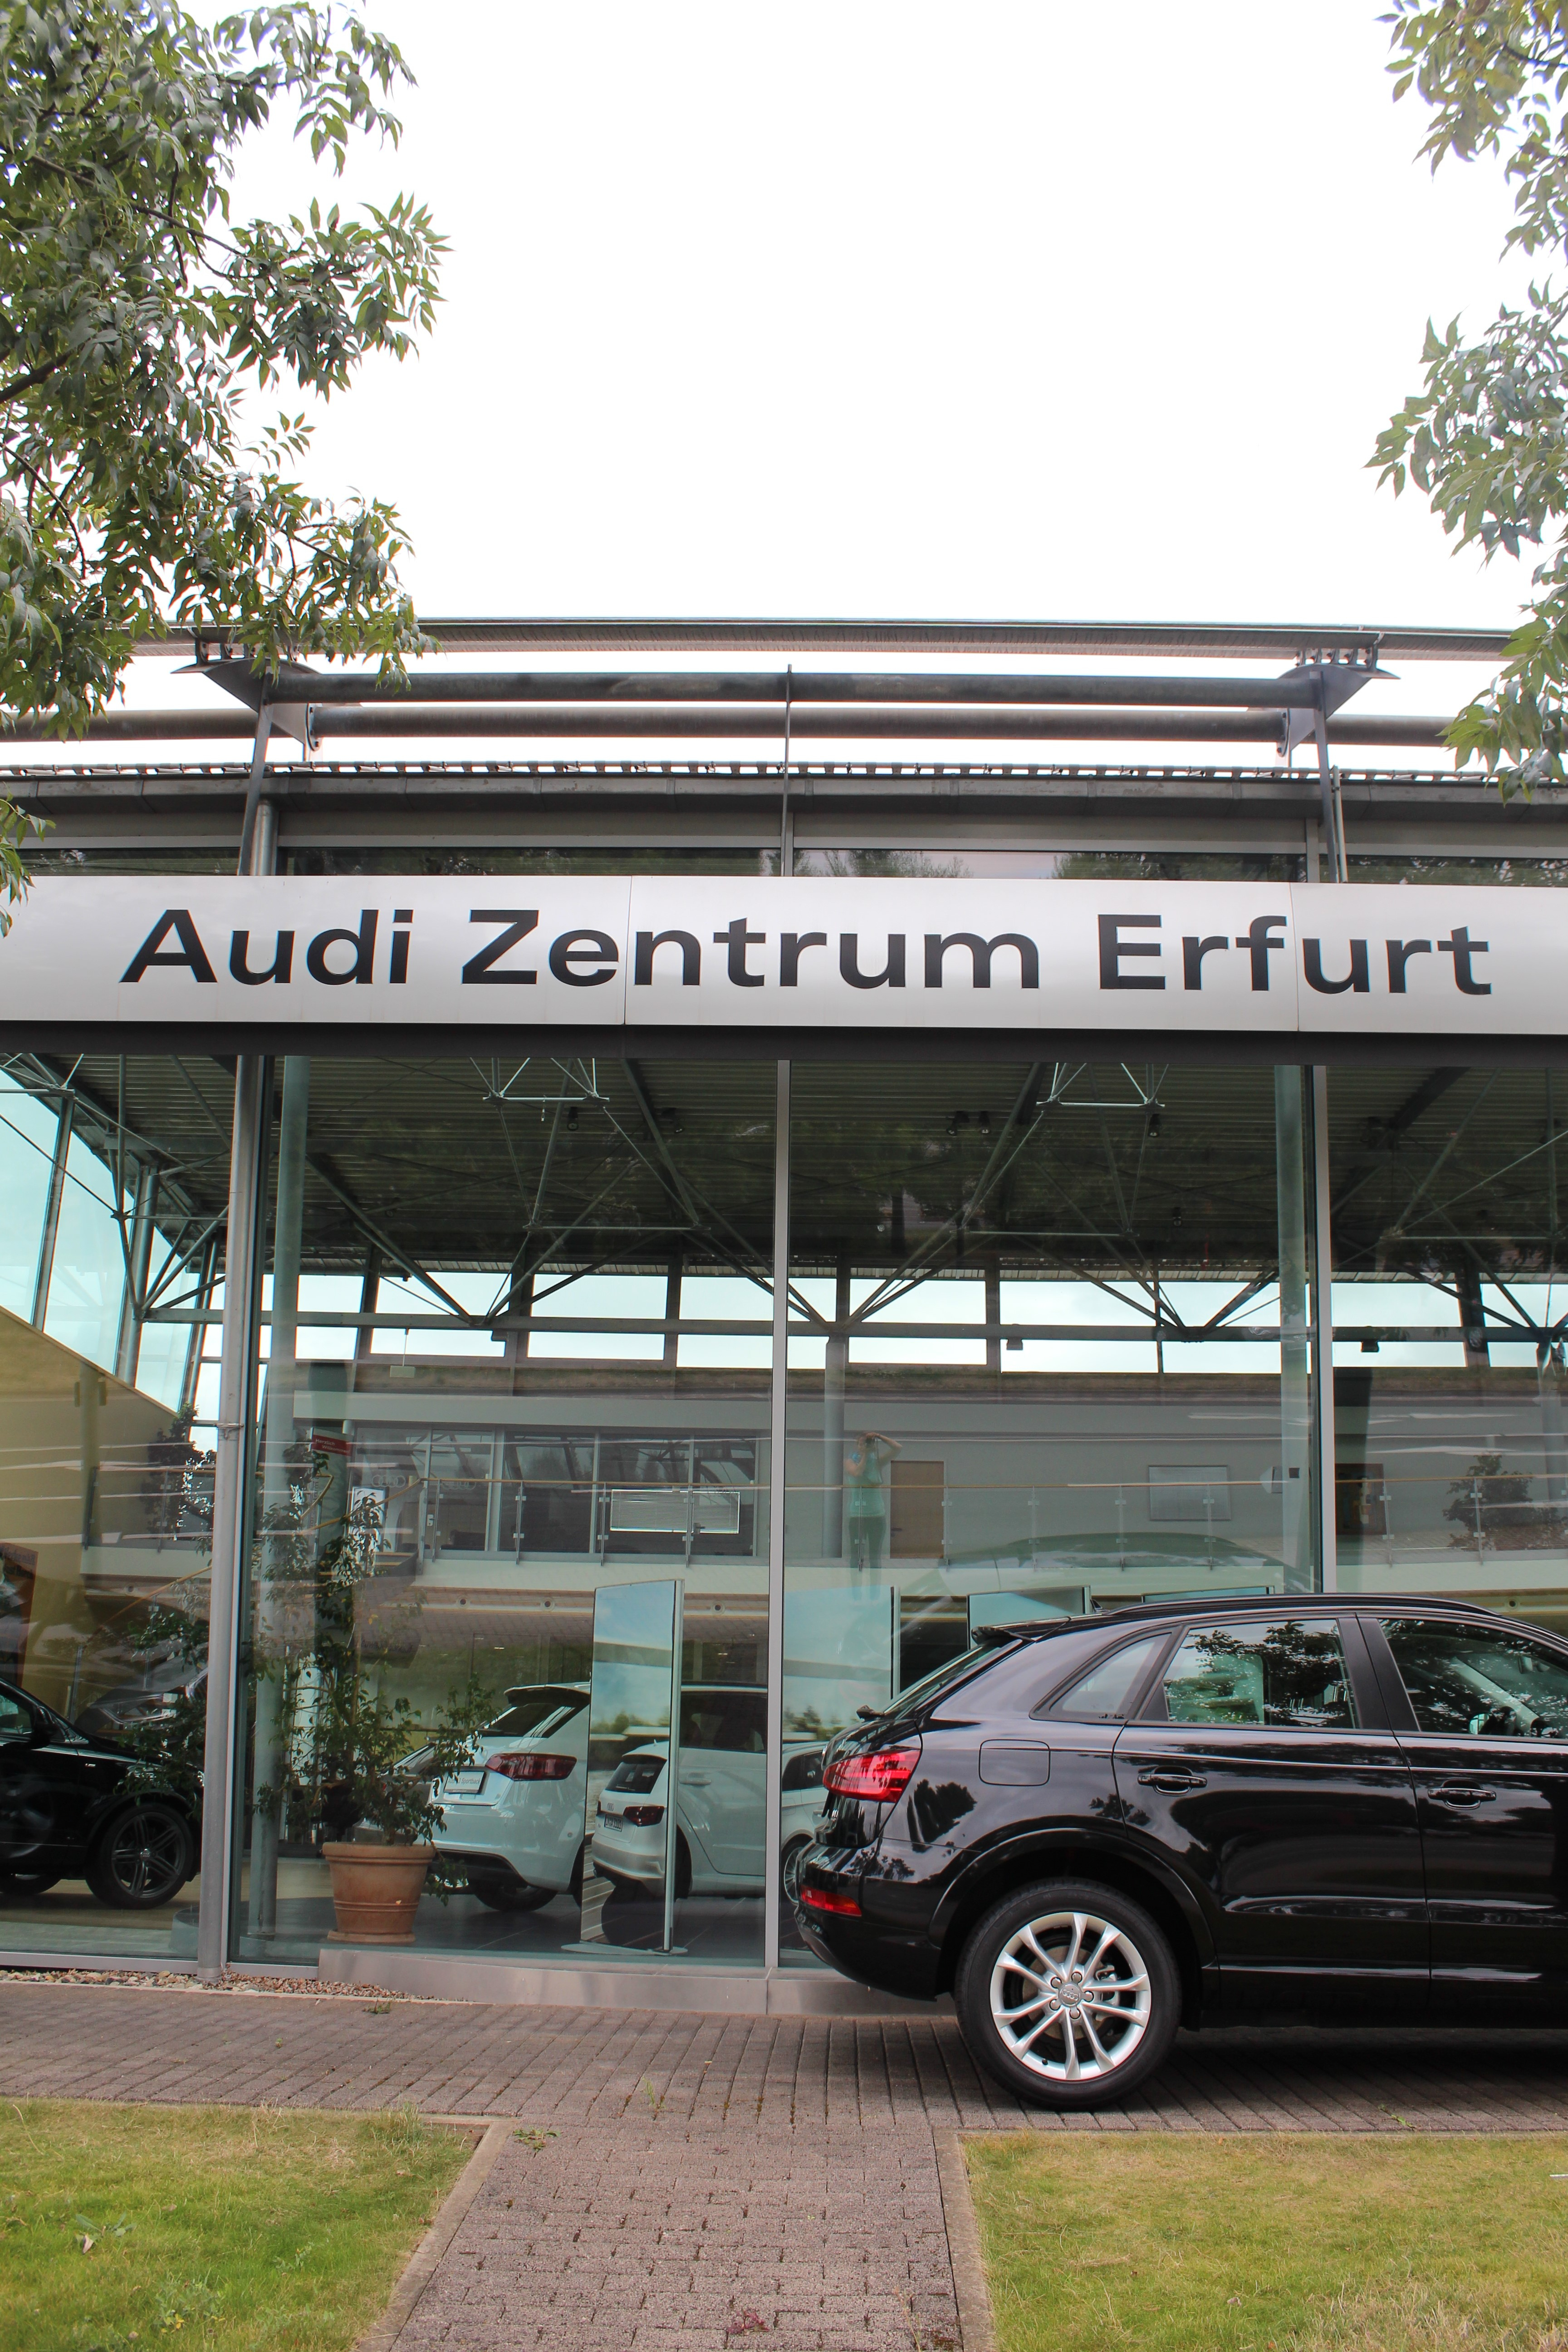 audi zentrum erfurt in erfurt branchenbuch deutschland. Black Bedroom Furniture Sets. Home Design Ideas